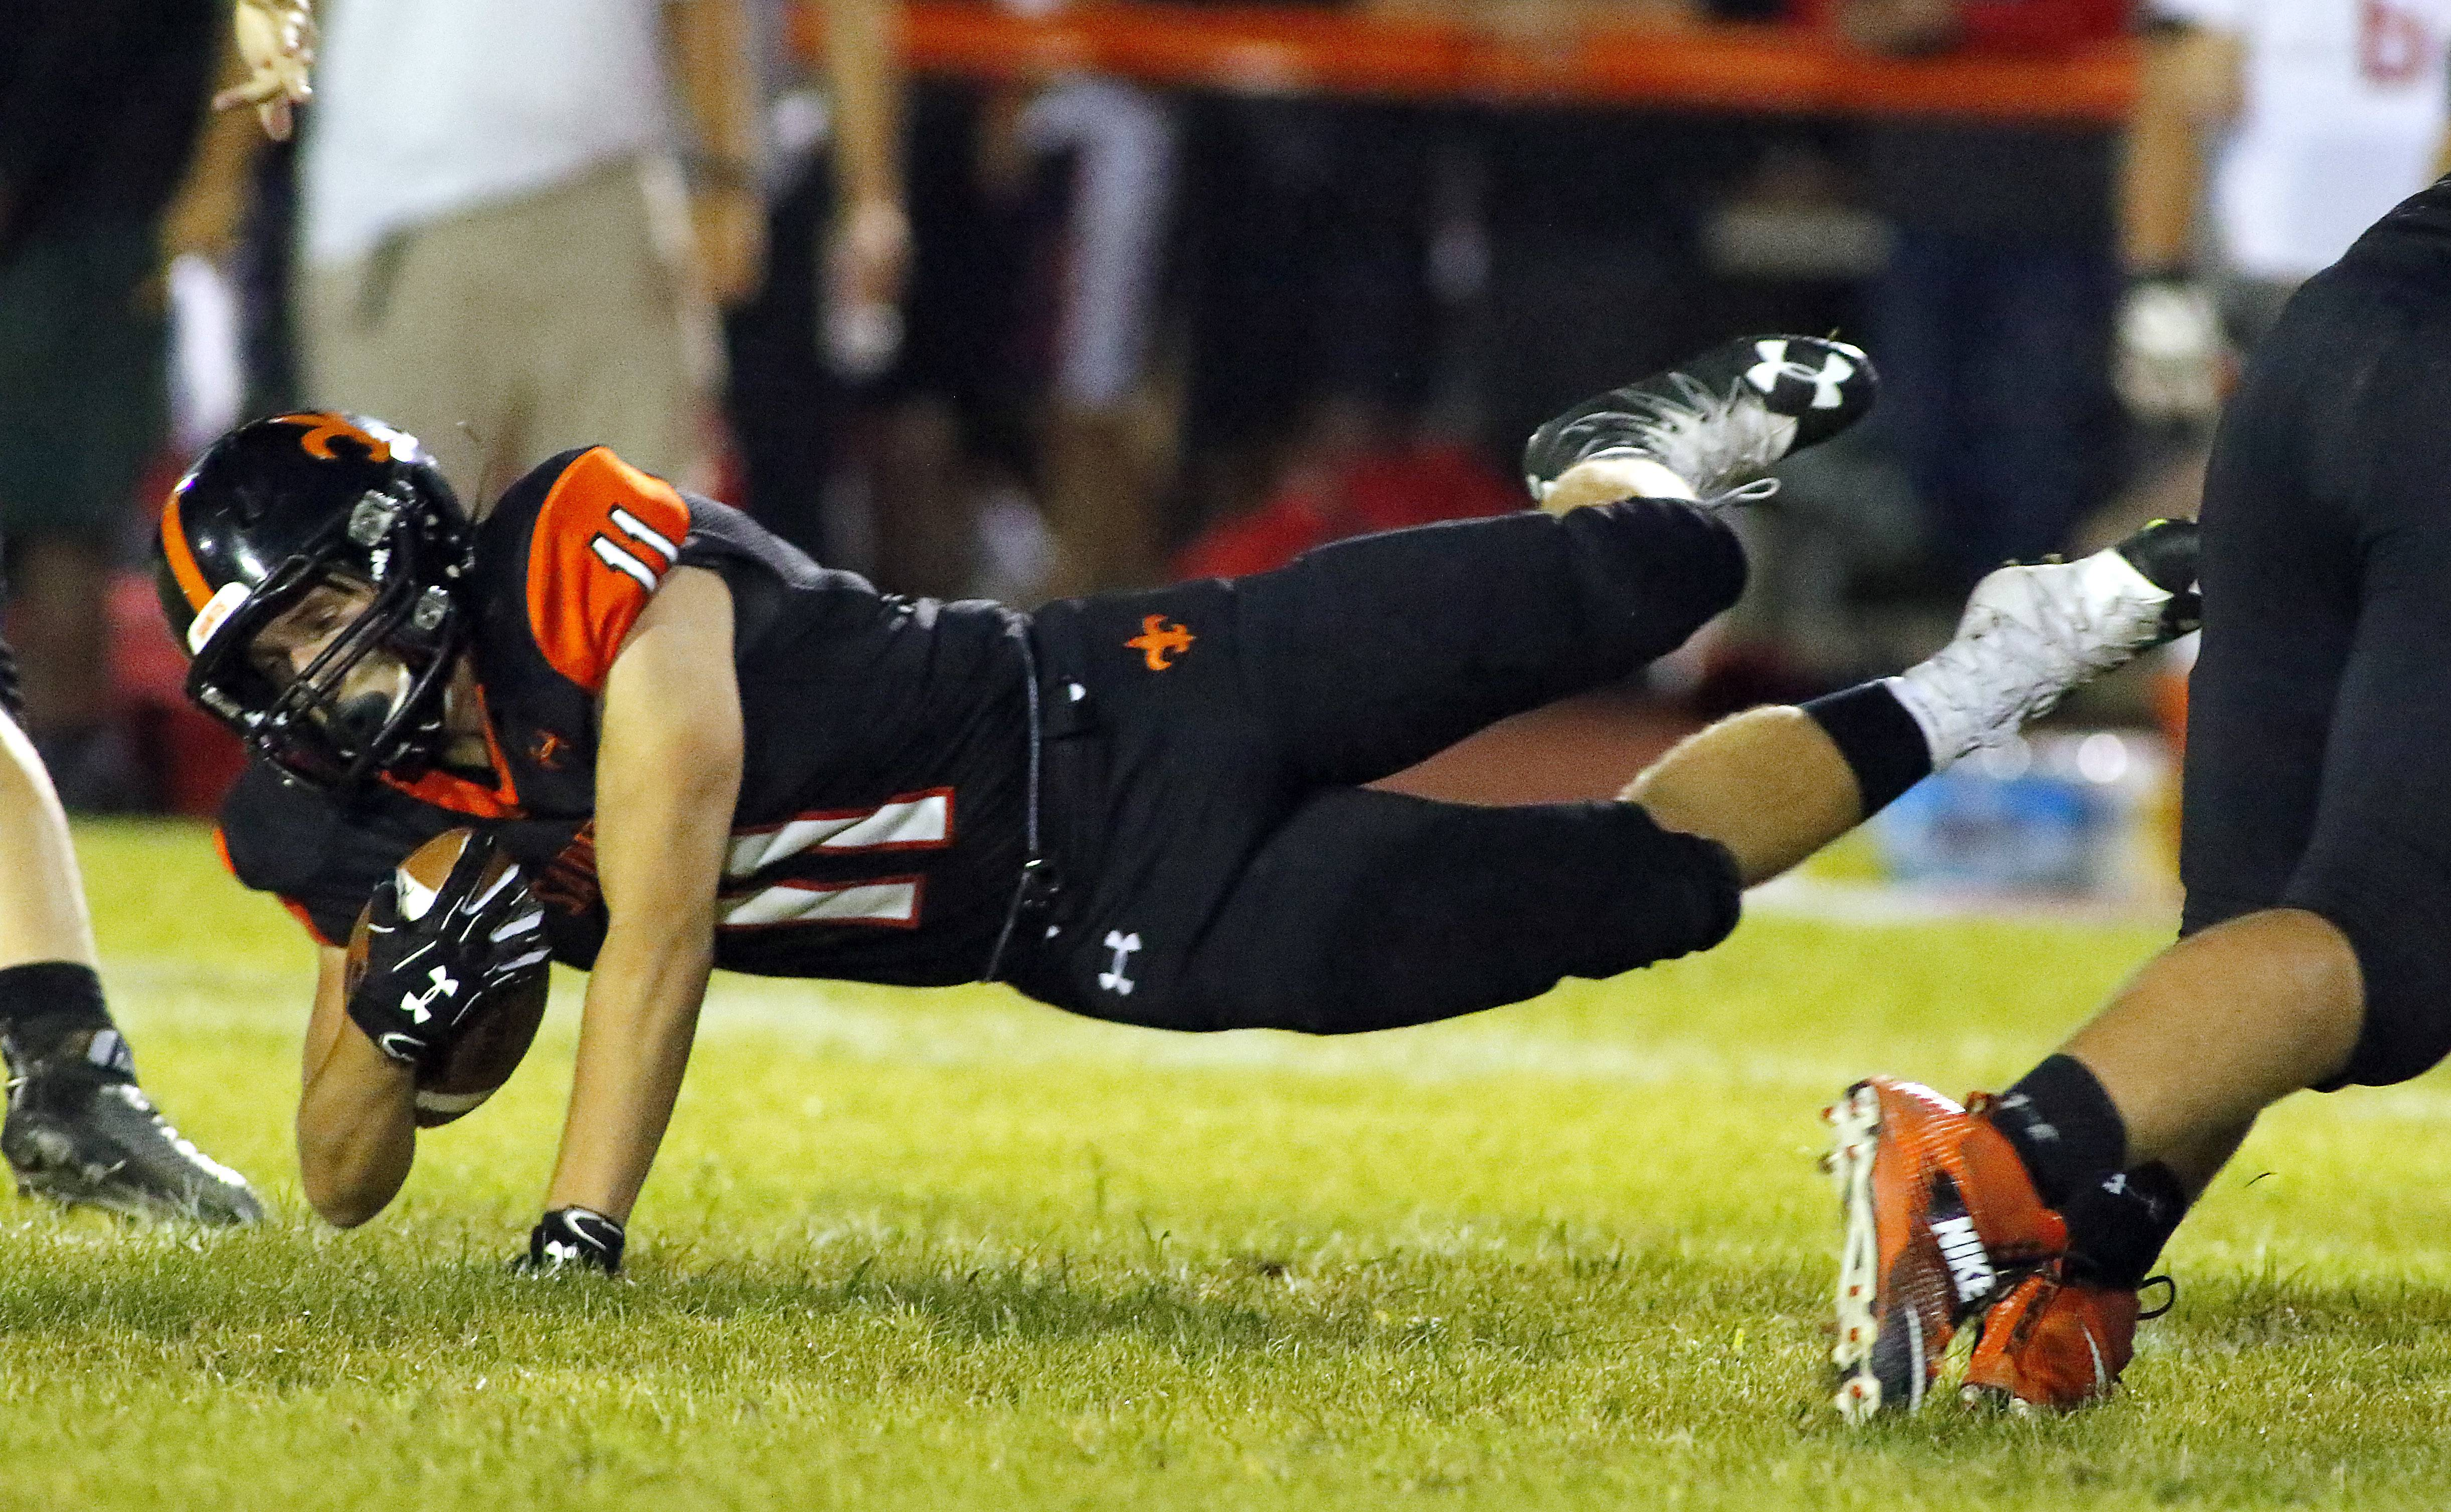 St. Charles East hopes to build on success of 2016